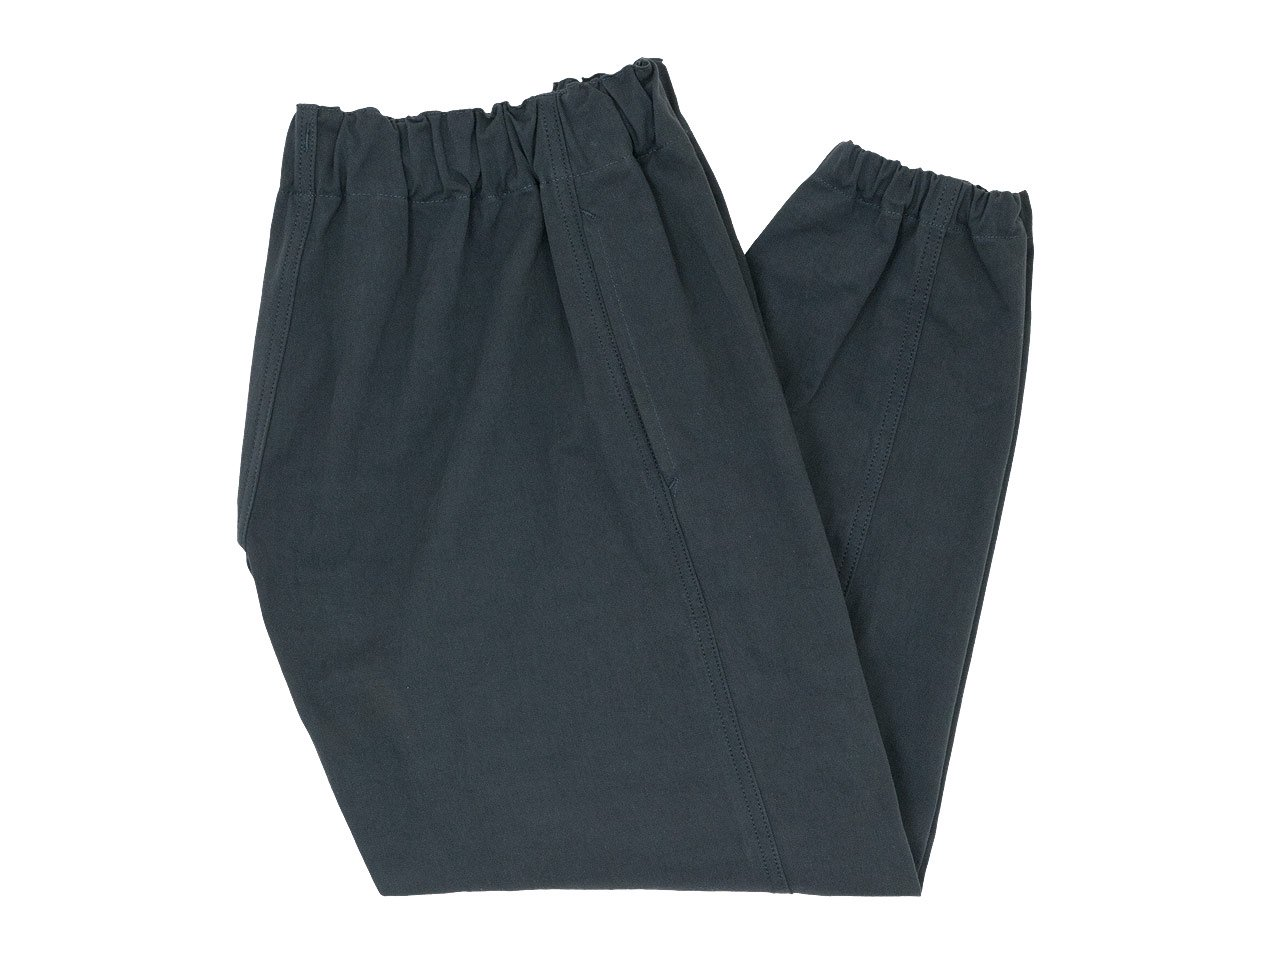 TUKI gum pants 34STEEL BLUE